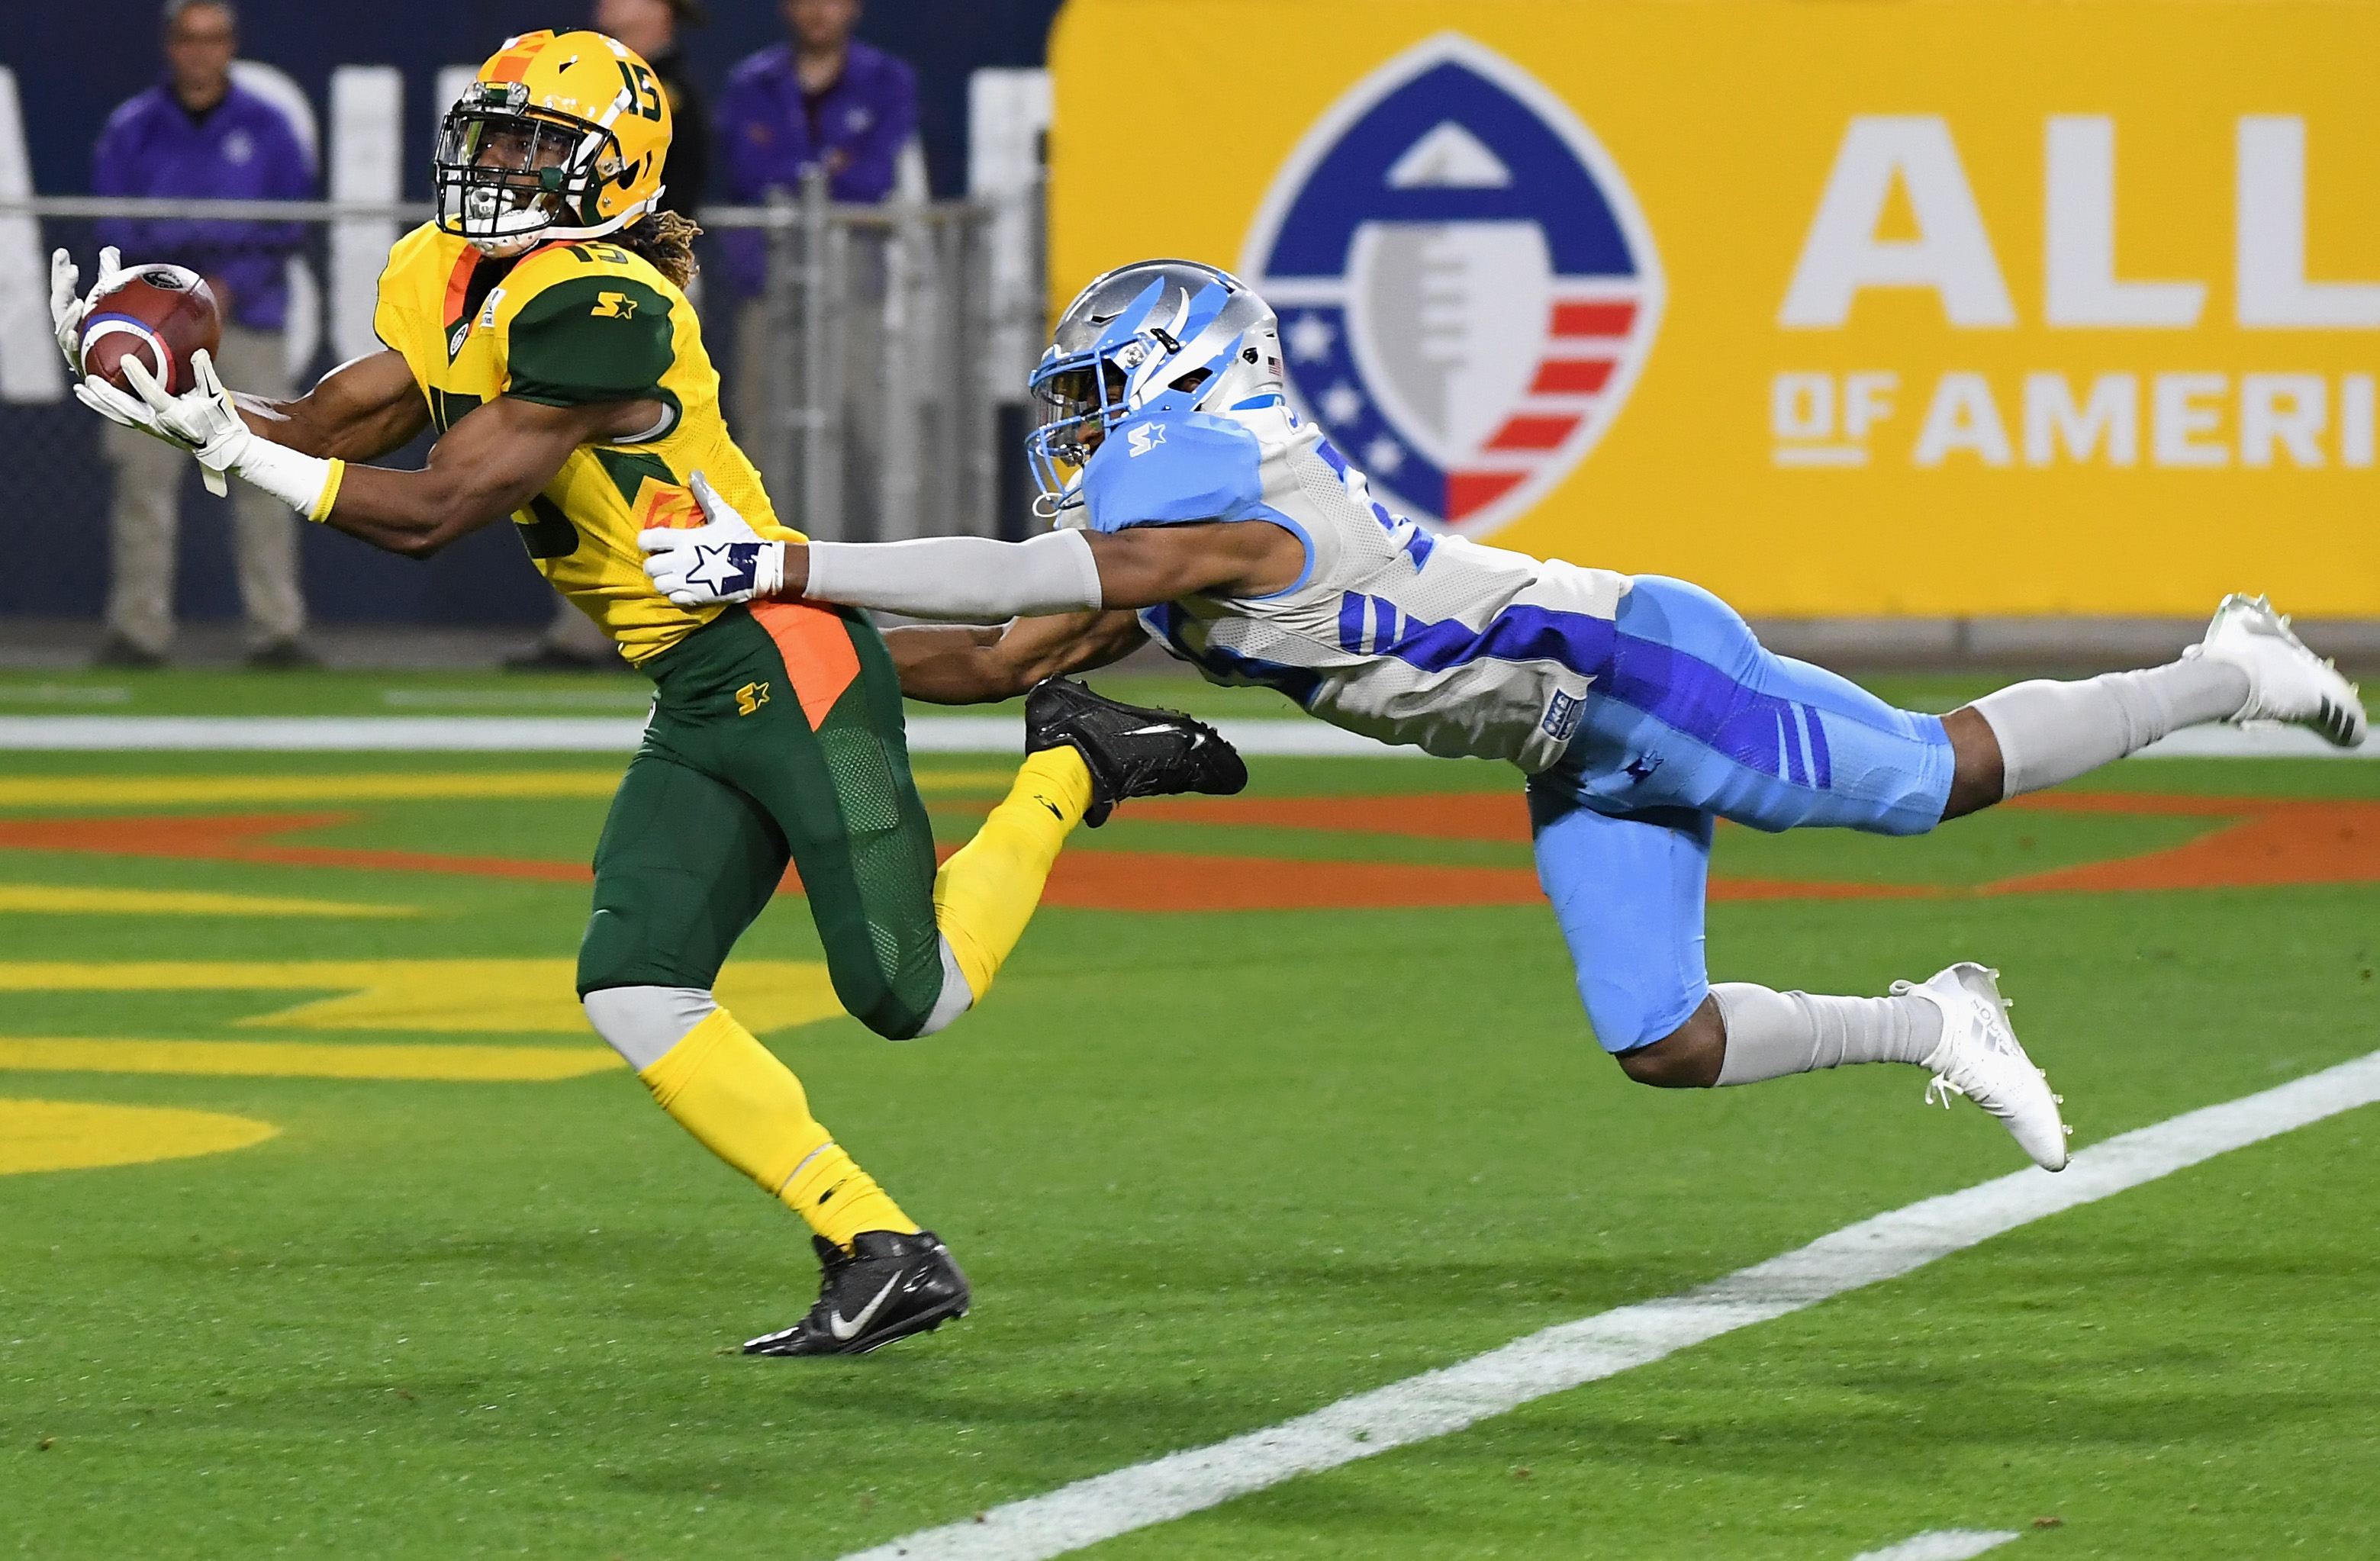 Arizona Hotshots wide receiver Rashad Ross catches a touchdown reception against the Salt Lake Stallions